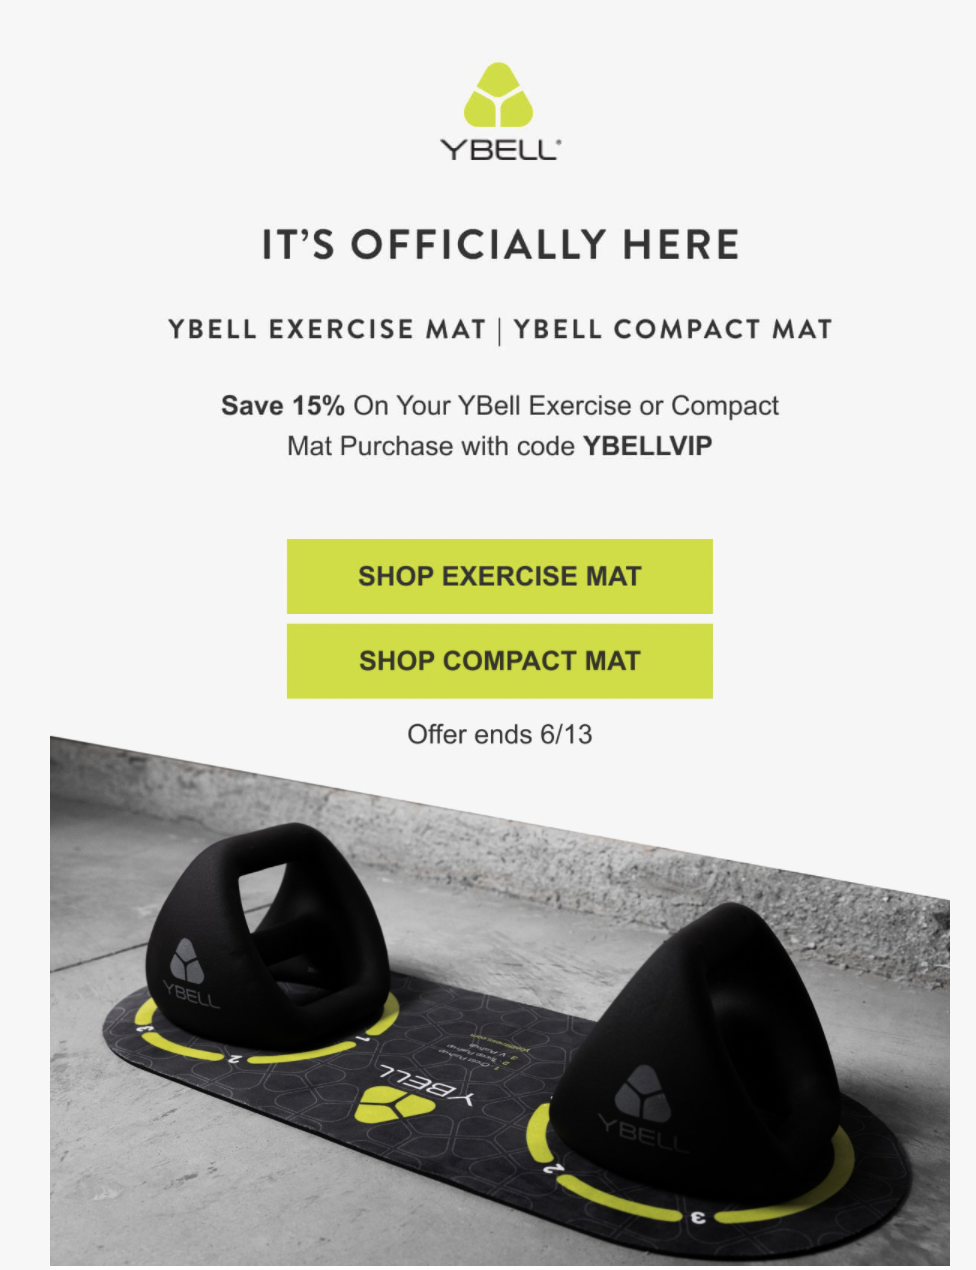 ecommerce product launch email campaign